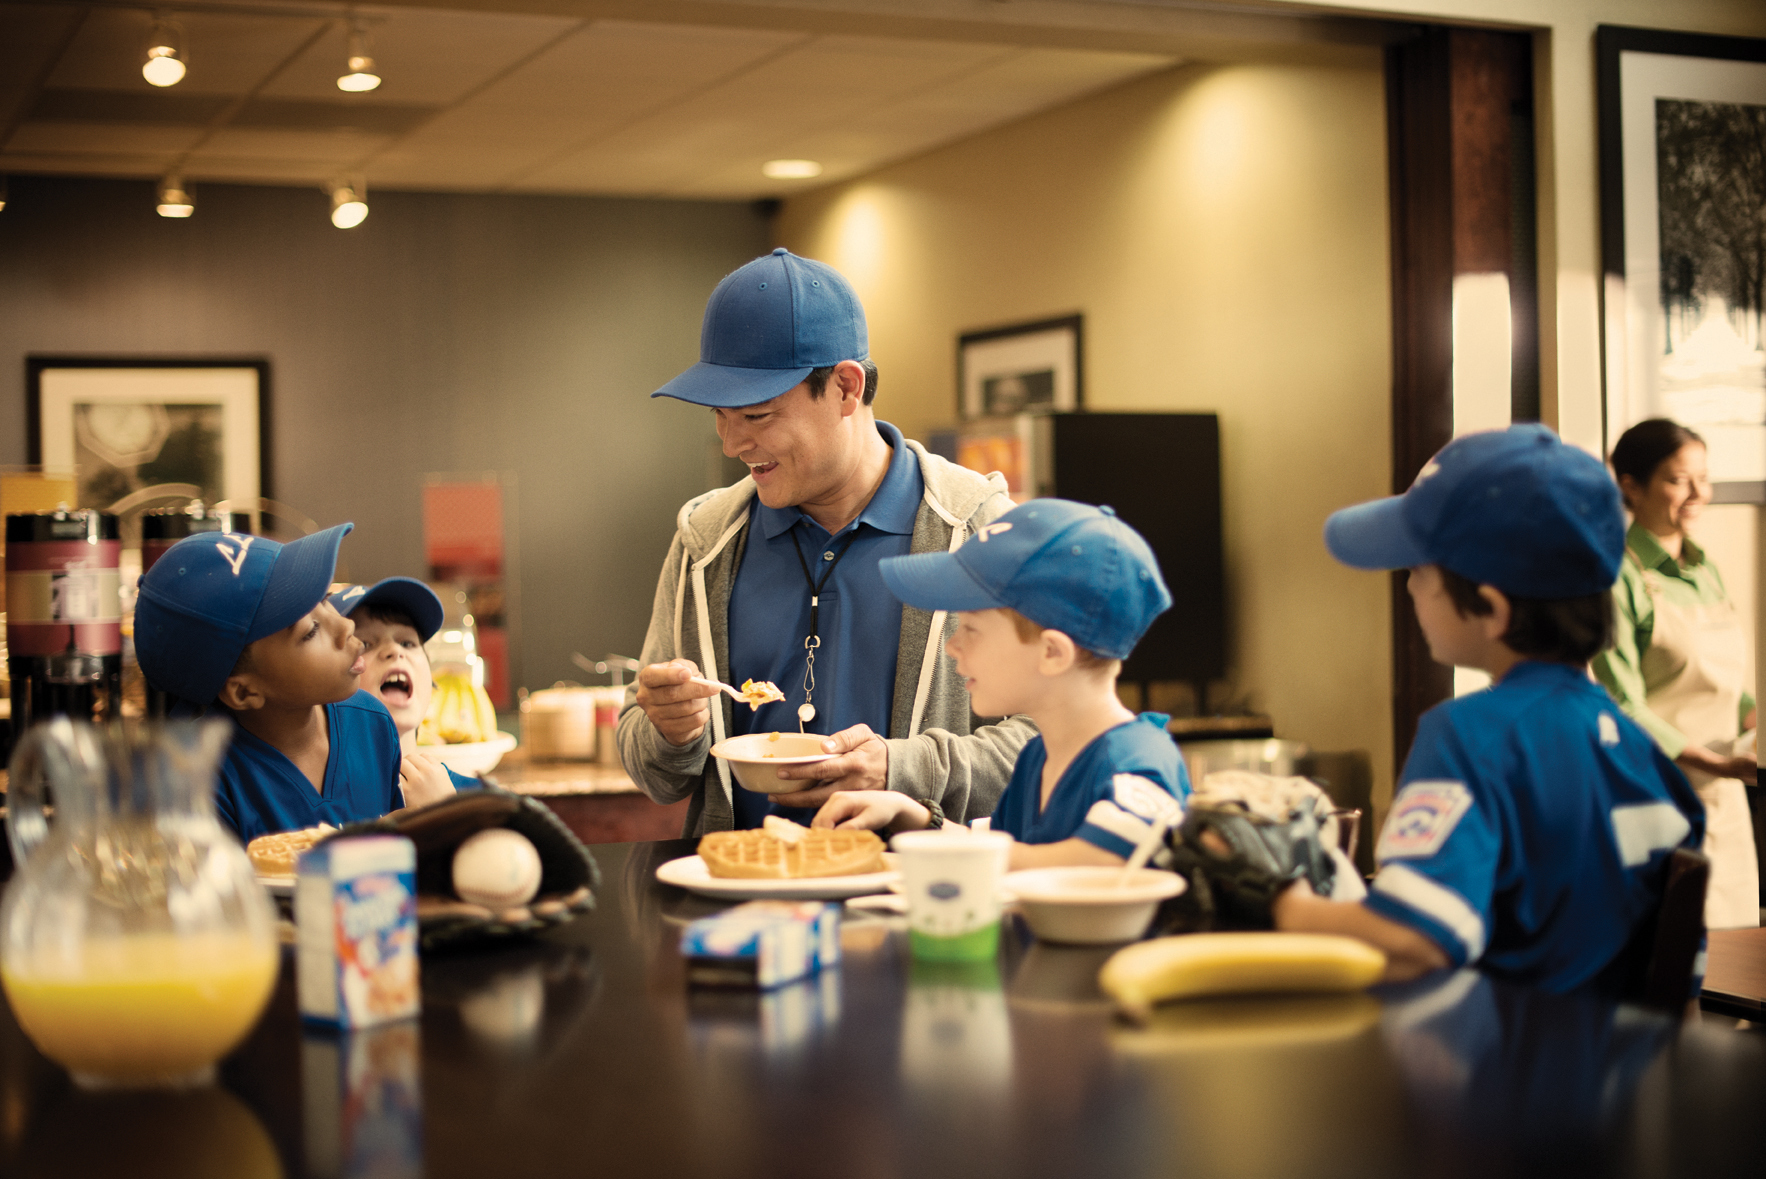 With the SI Play's Tourney Machine platform, parents and organizers can spend less time planning and more time at the breakfast waffle station.(Photo: Business Wire)